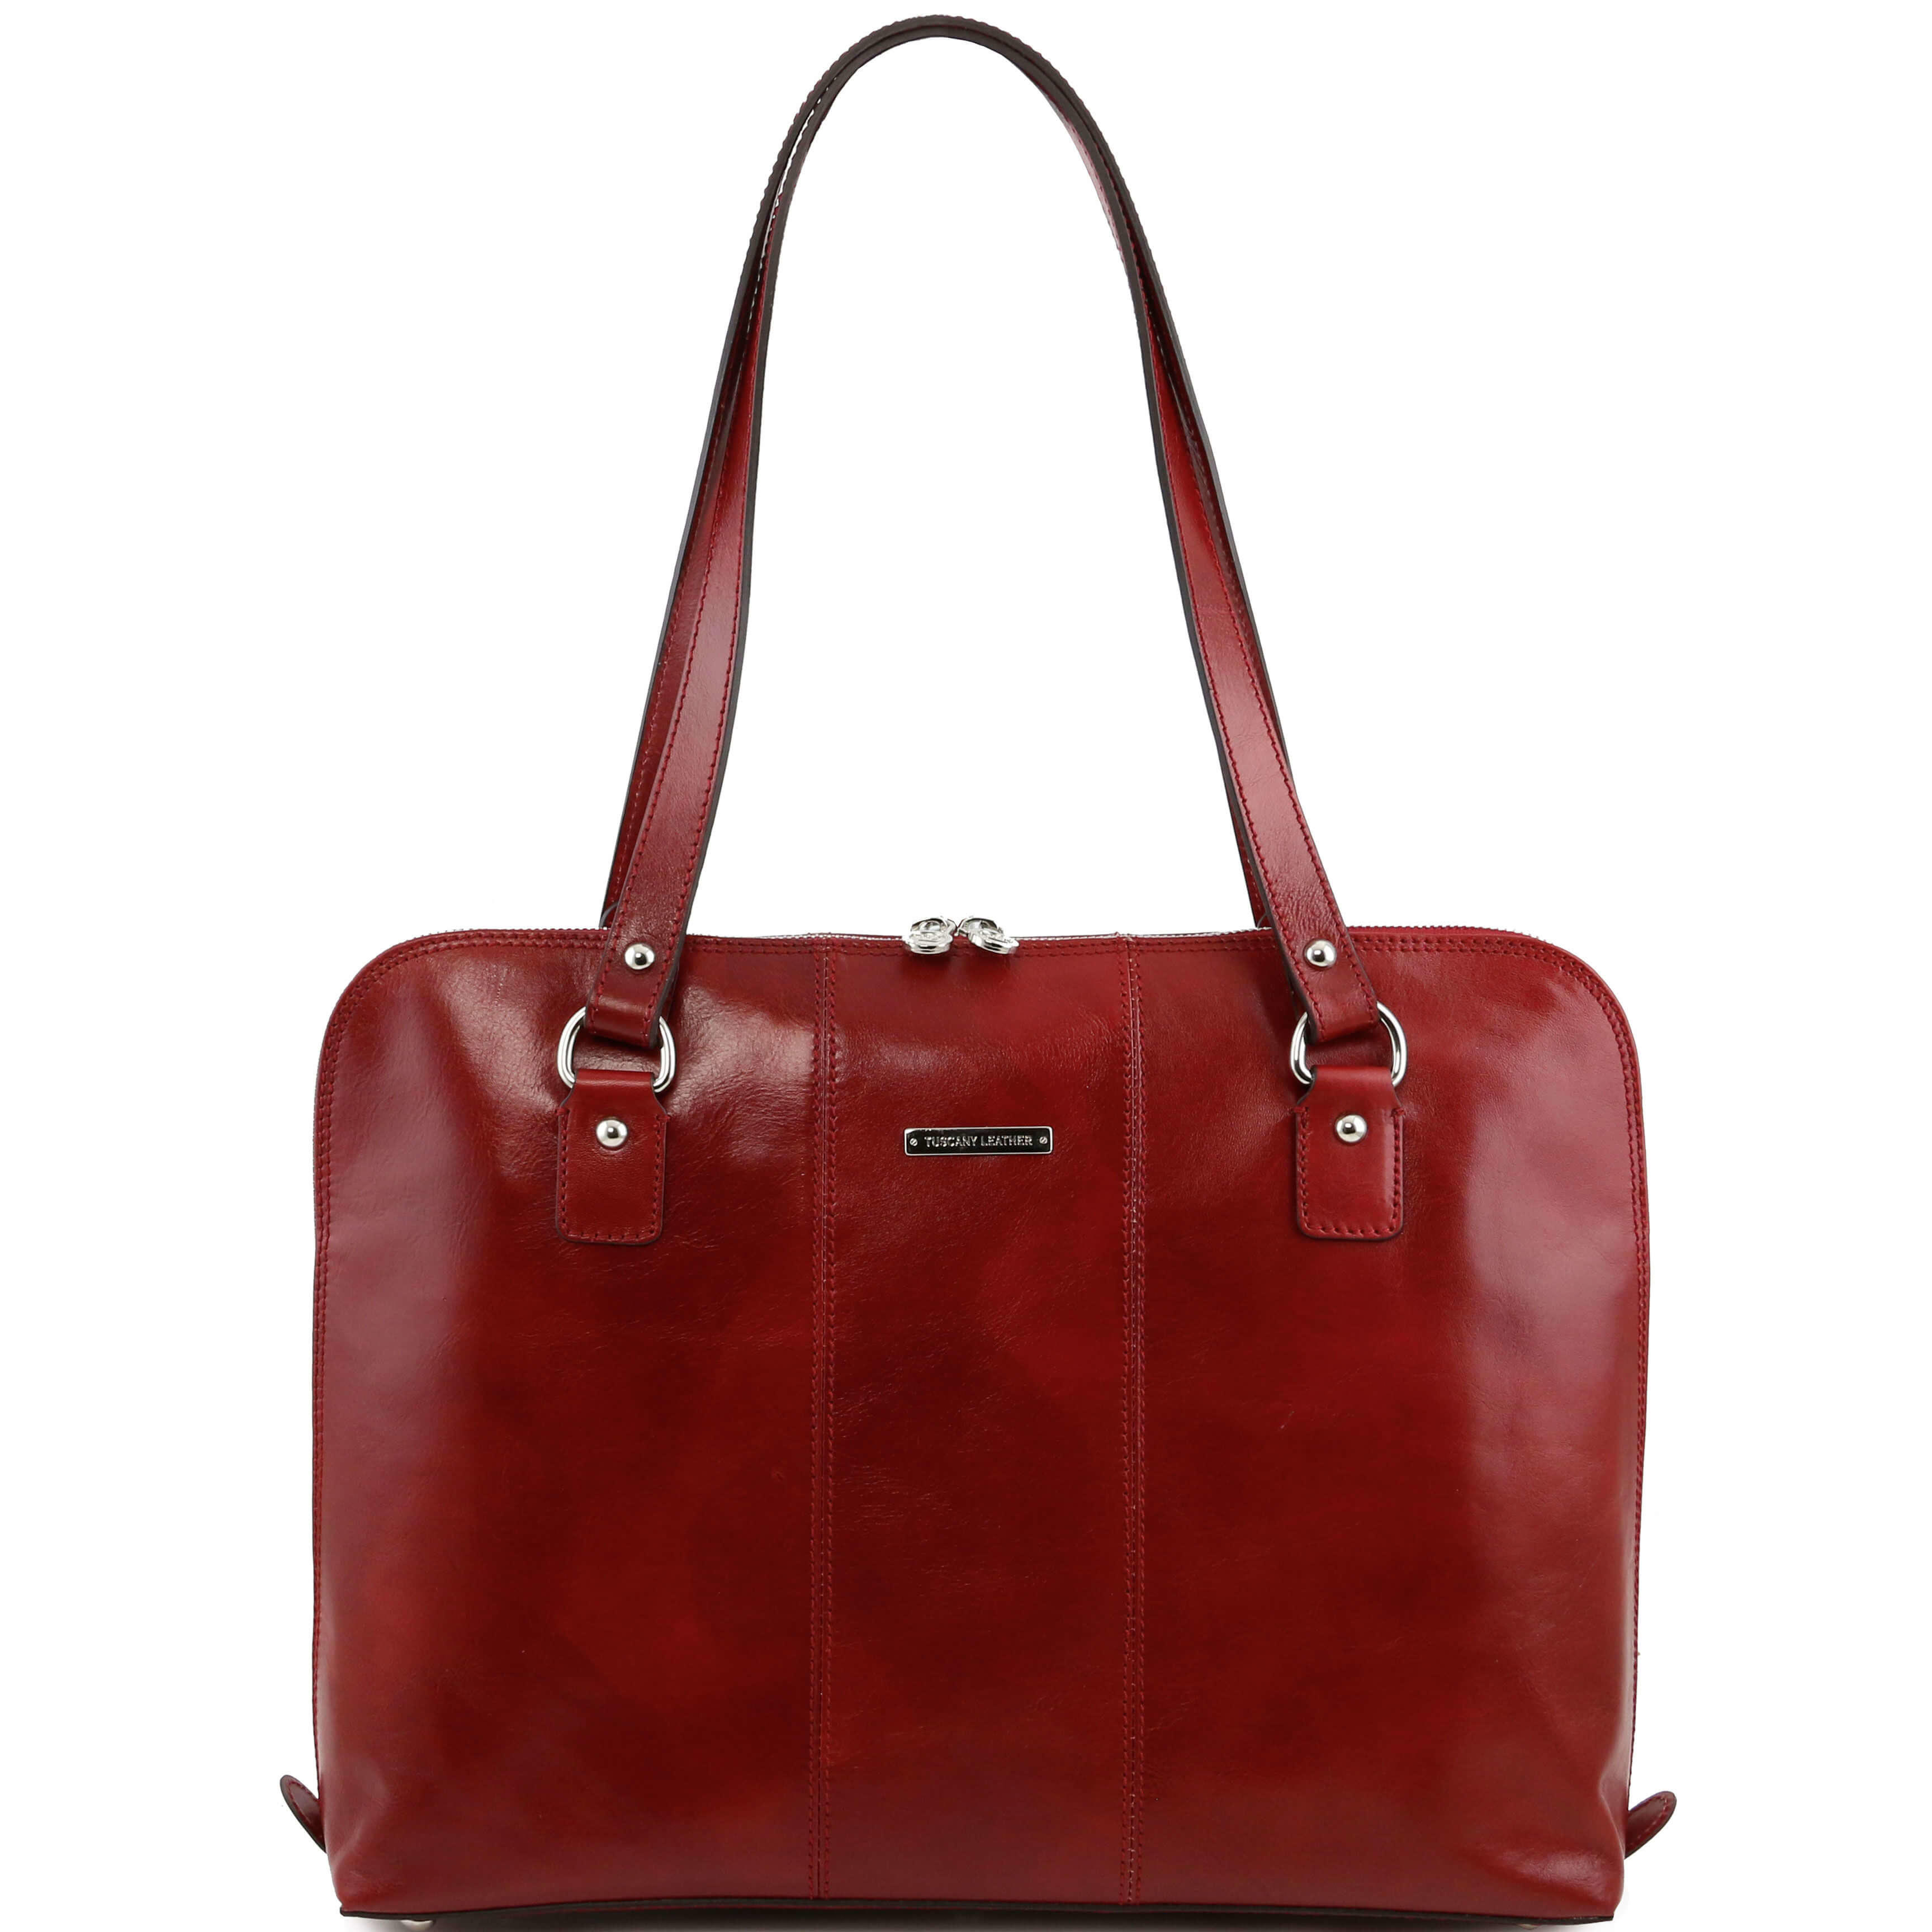 "TL141277 Ravenna Leather 15.6"" Laptop Bag-Case-Briefcase-Shoulder Bag Red"